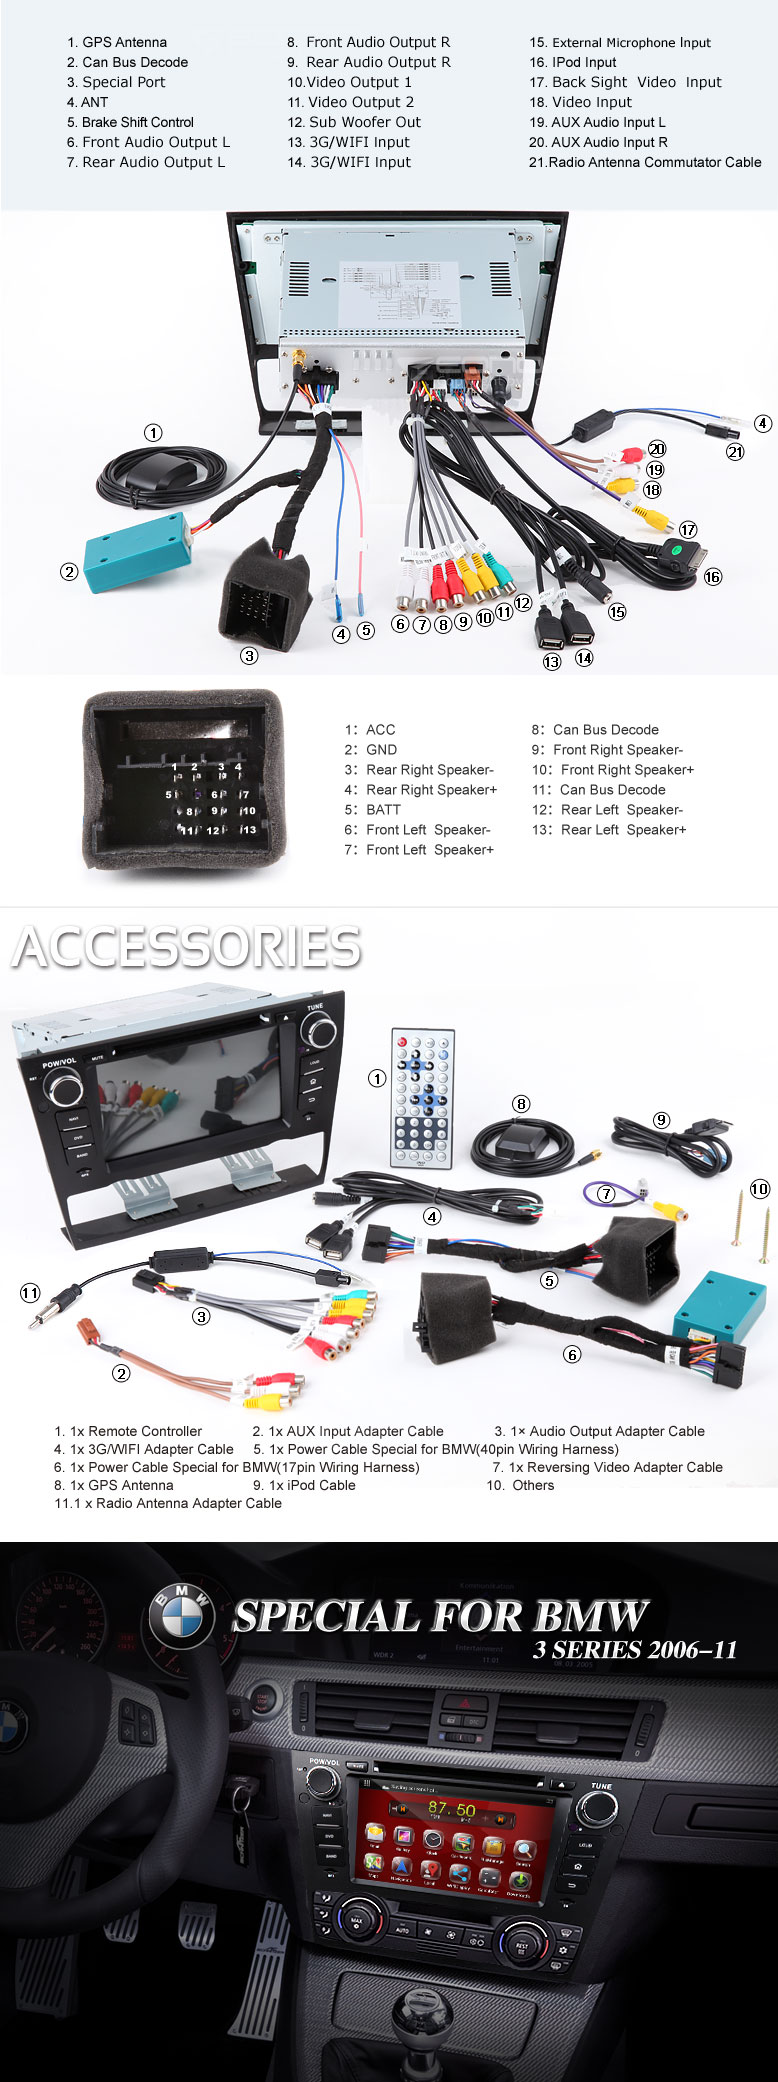 Eonon Wiring Schematic Diagrams D5150 Diagram Car Audio Installation Circuit And Hub U2022 Ford Truck